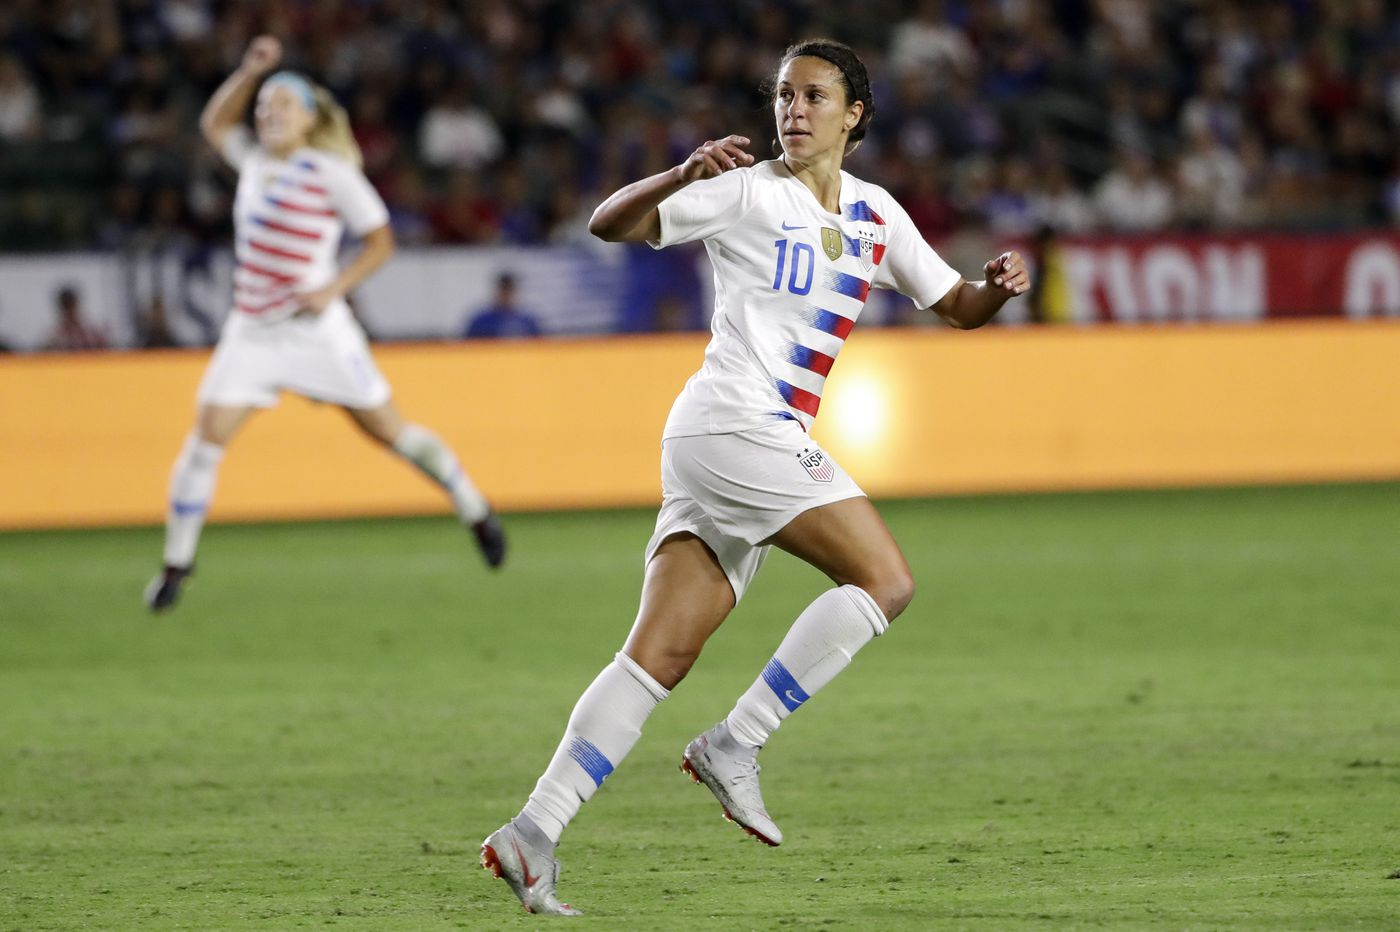 Carli Lloyd hat trick helps U.S. women's national team rout Panama 5-0 in World Cup qualifying